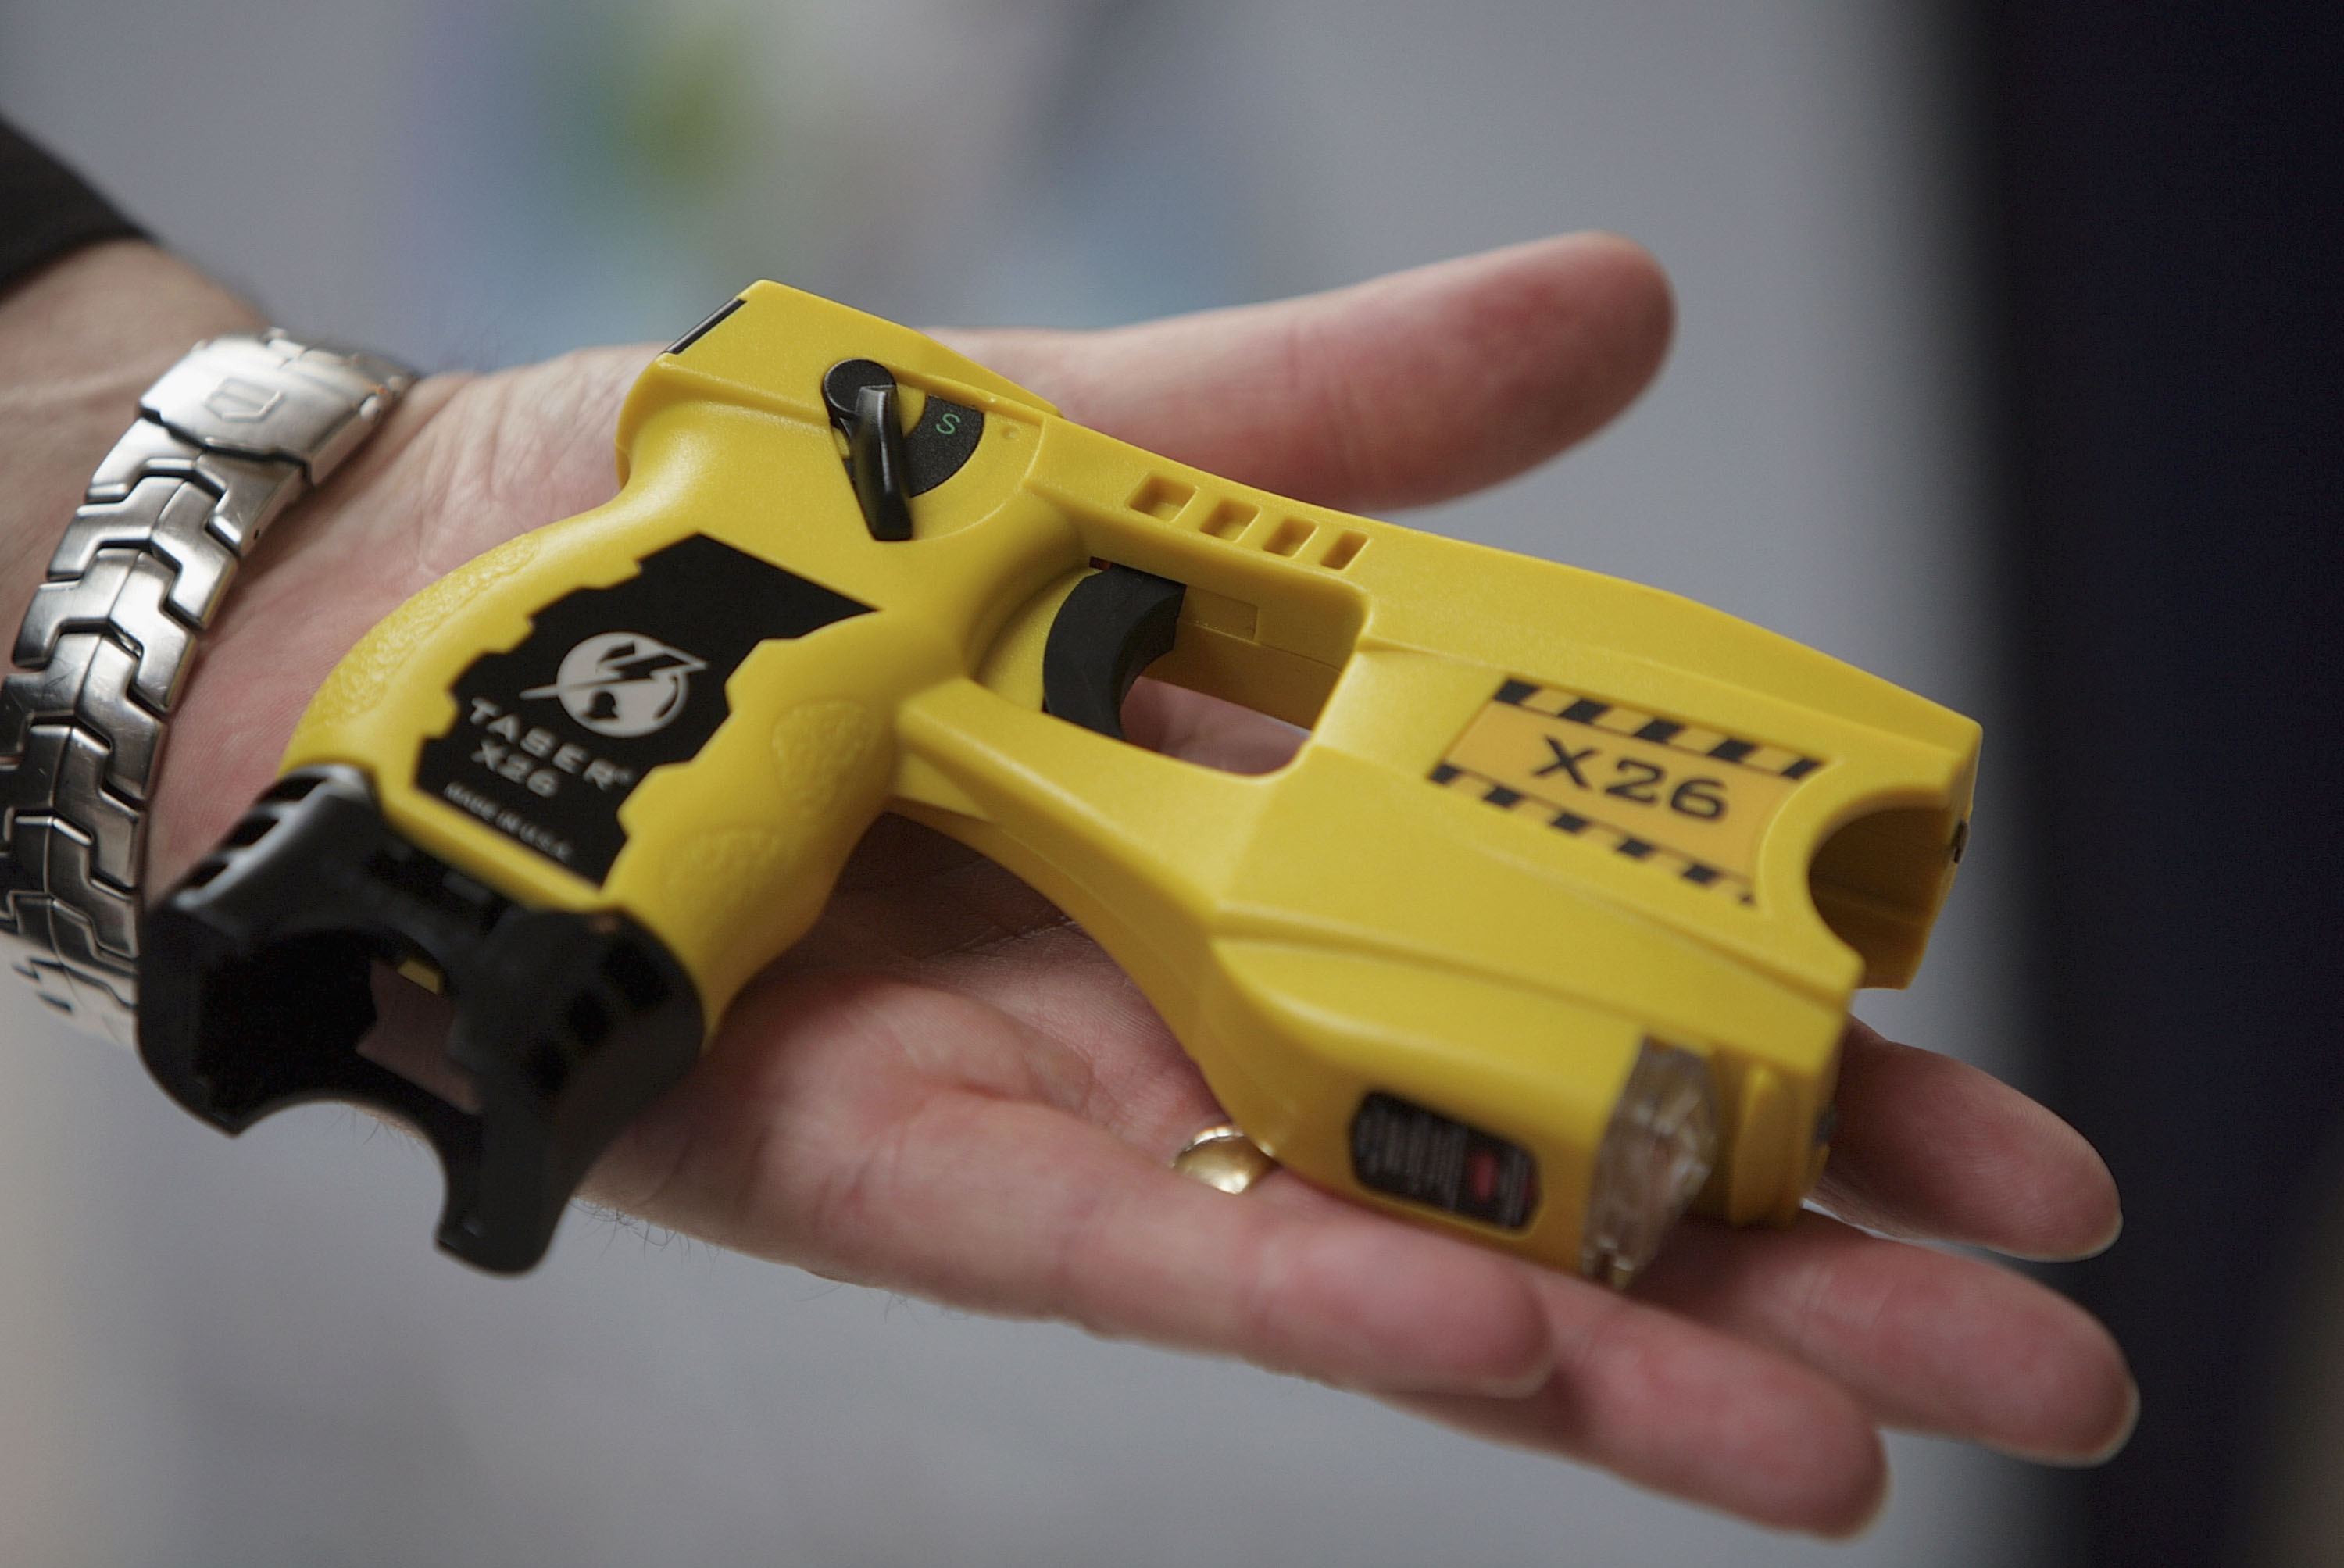 A Taser used by many police departments (Getty)